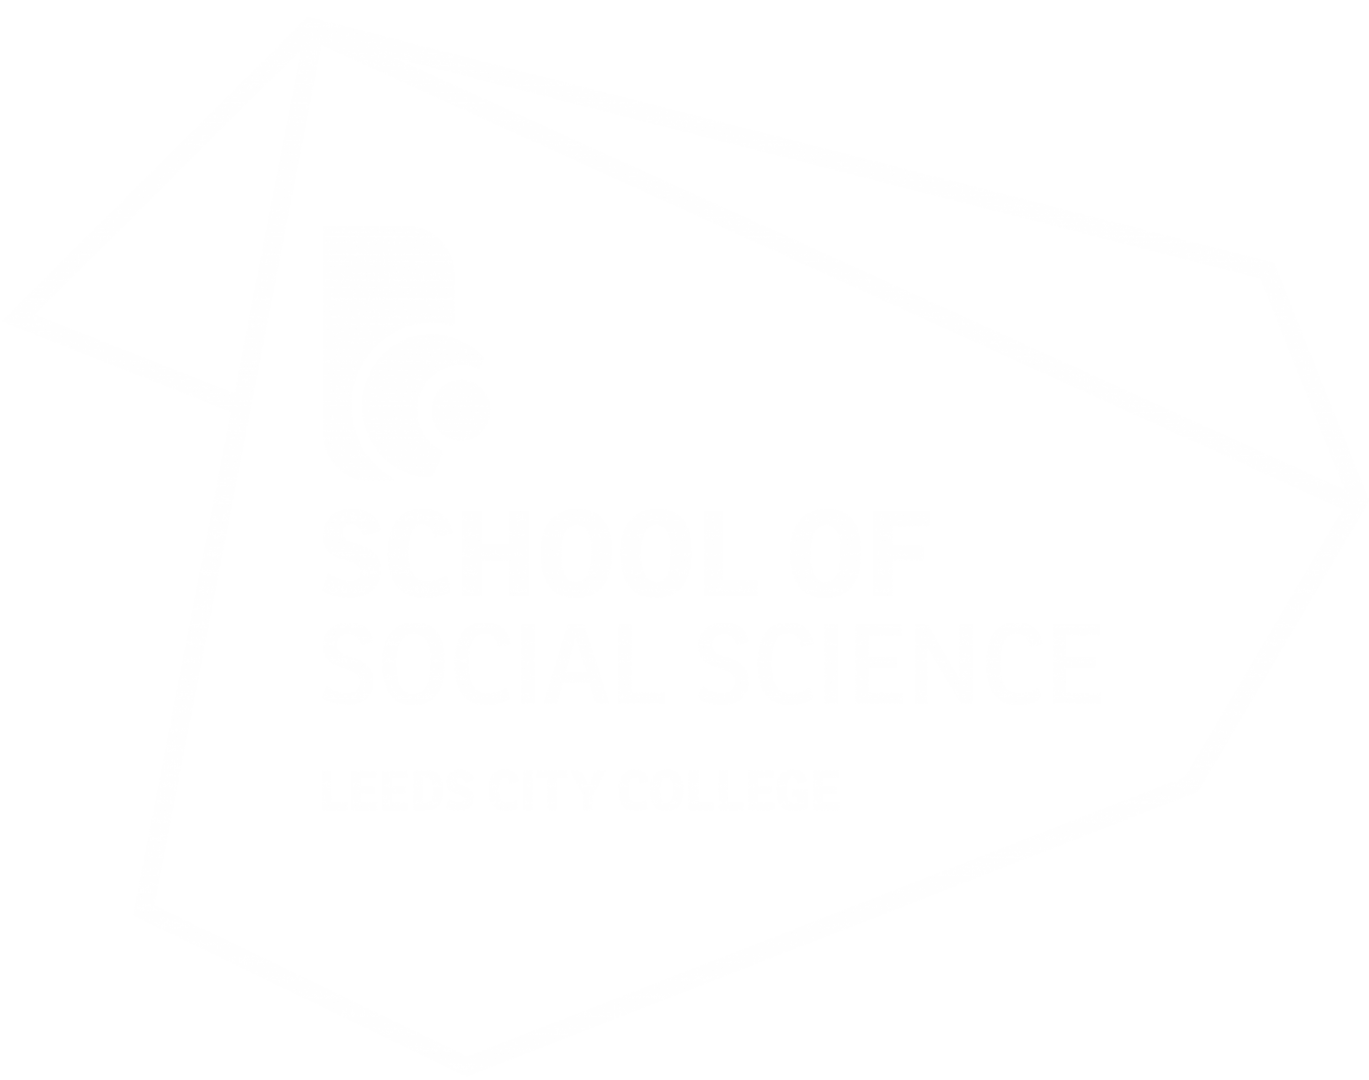 School of Social Science